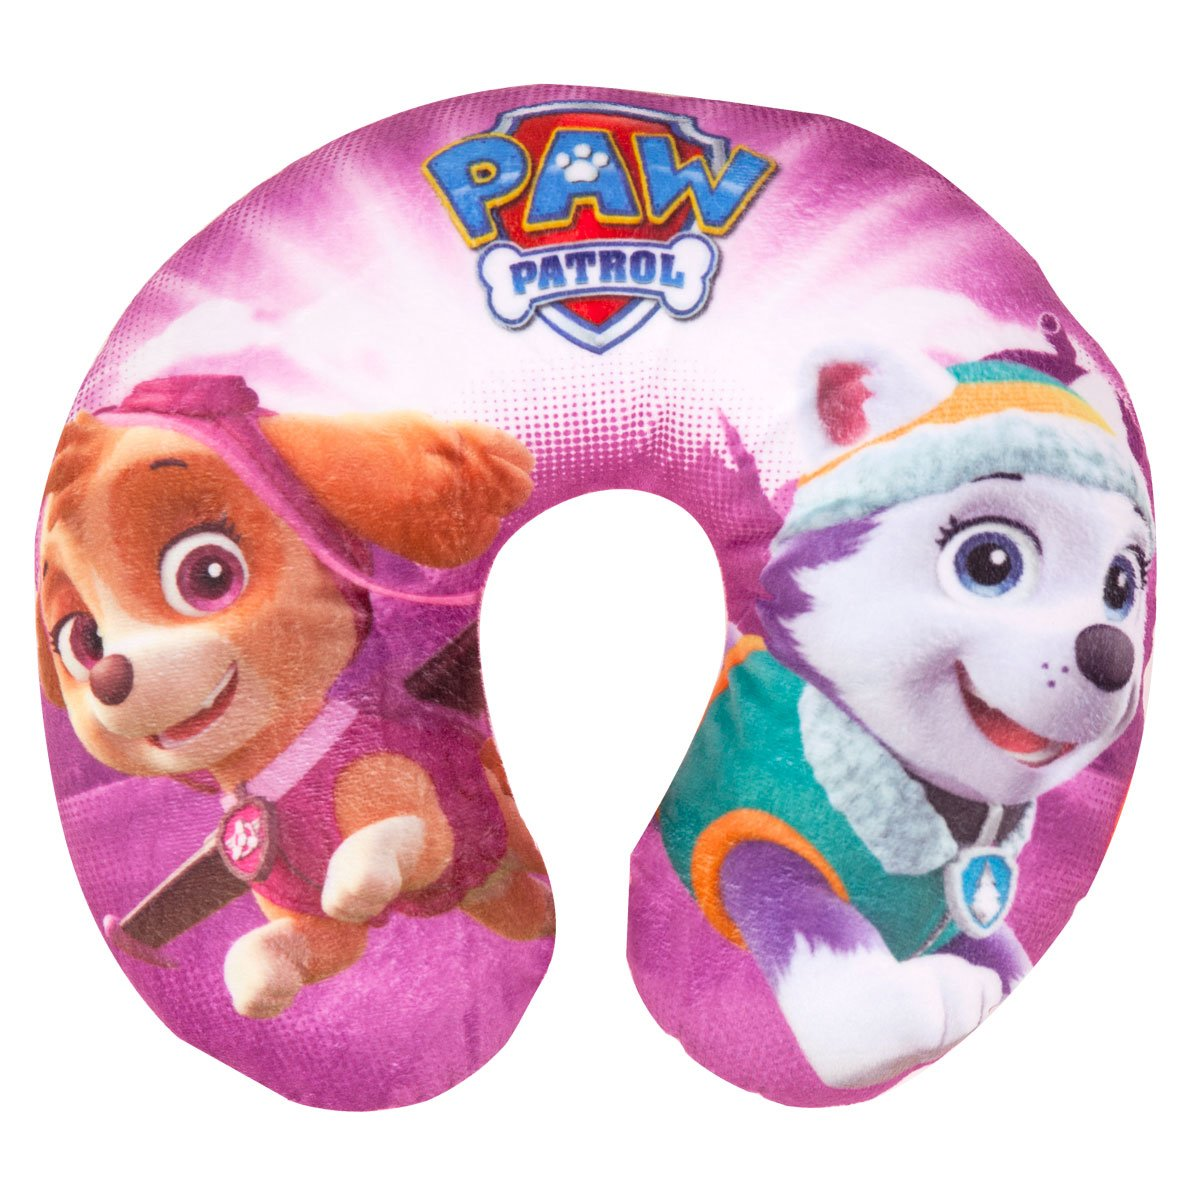 Paw Patrol Travel Pillow Everest & Skye Soft Cushion Head & Neck Support - Pink